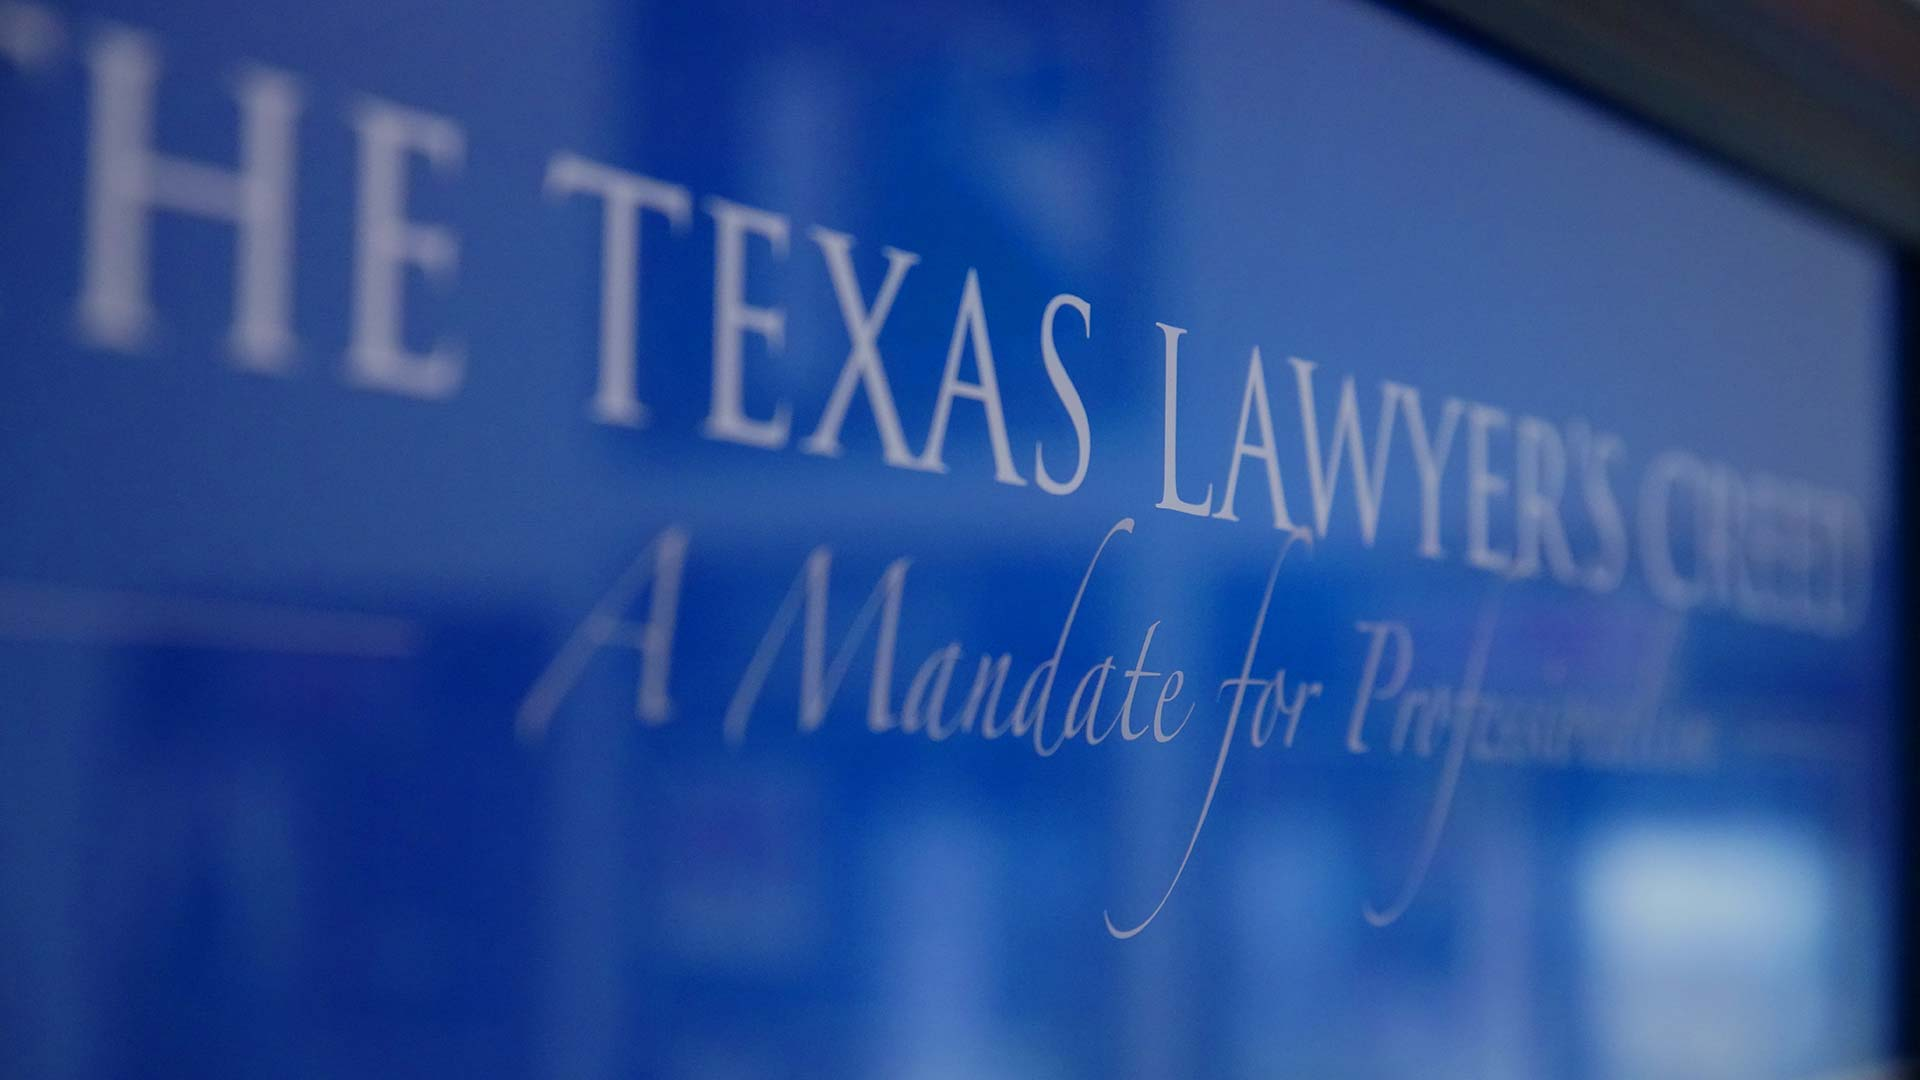 Image of the Texas Lawyers Creed to represent the Wills page.